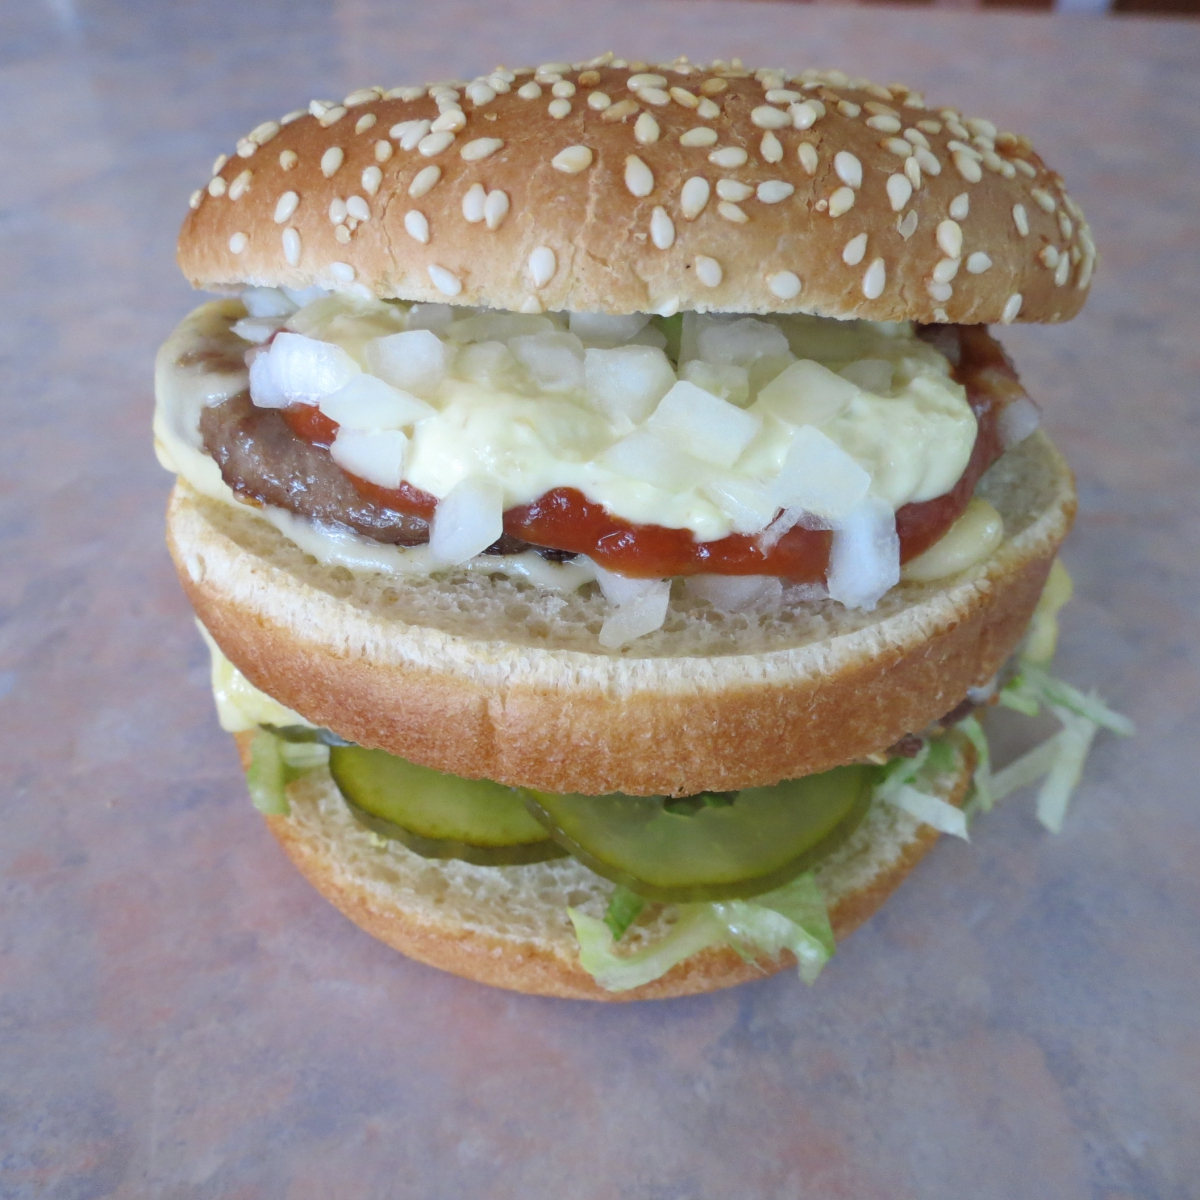 Jacco's Dubbelburger cheese